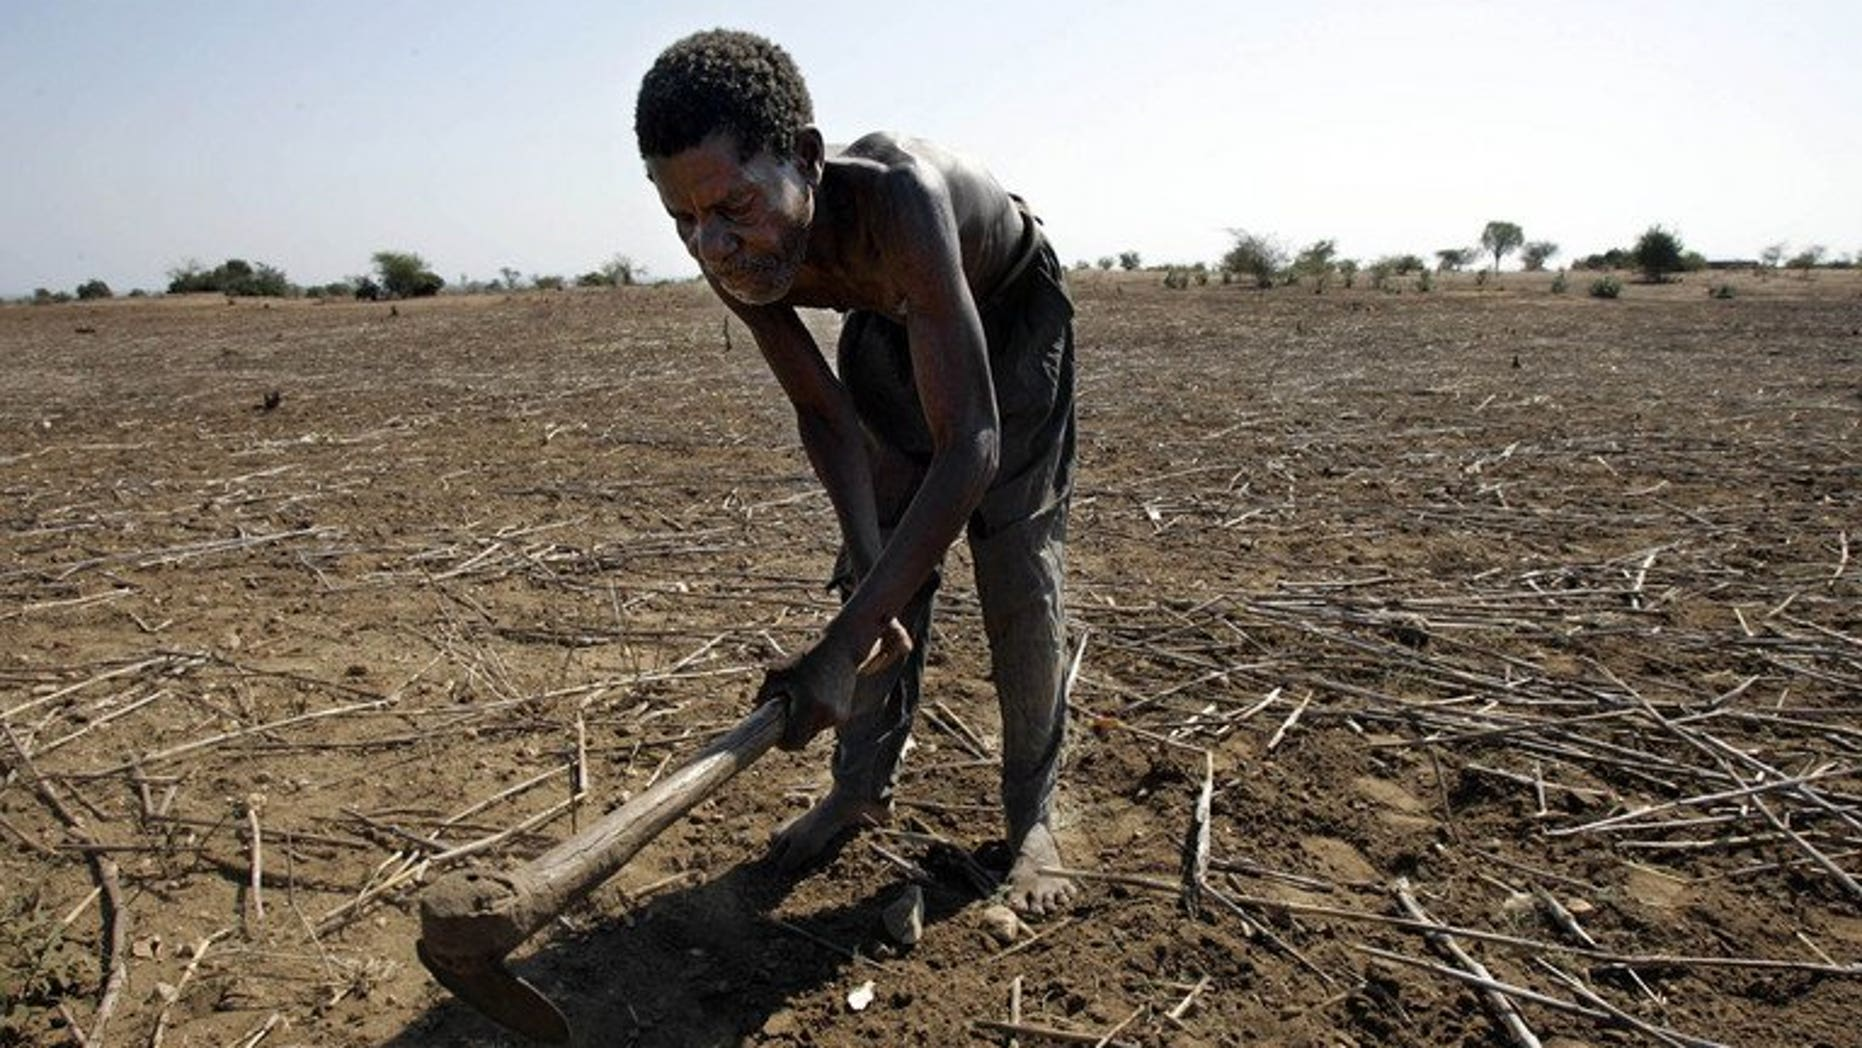 A Malawian farmer works on his land in Nsanje district on 12 October 2005. Nearly 10 percent of Malawi's 13 million people face hunger due of low yields of the main staple maize, prolonged dry spells and flooding, a report has said.